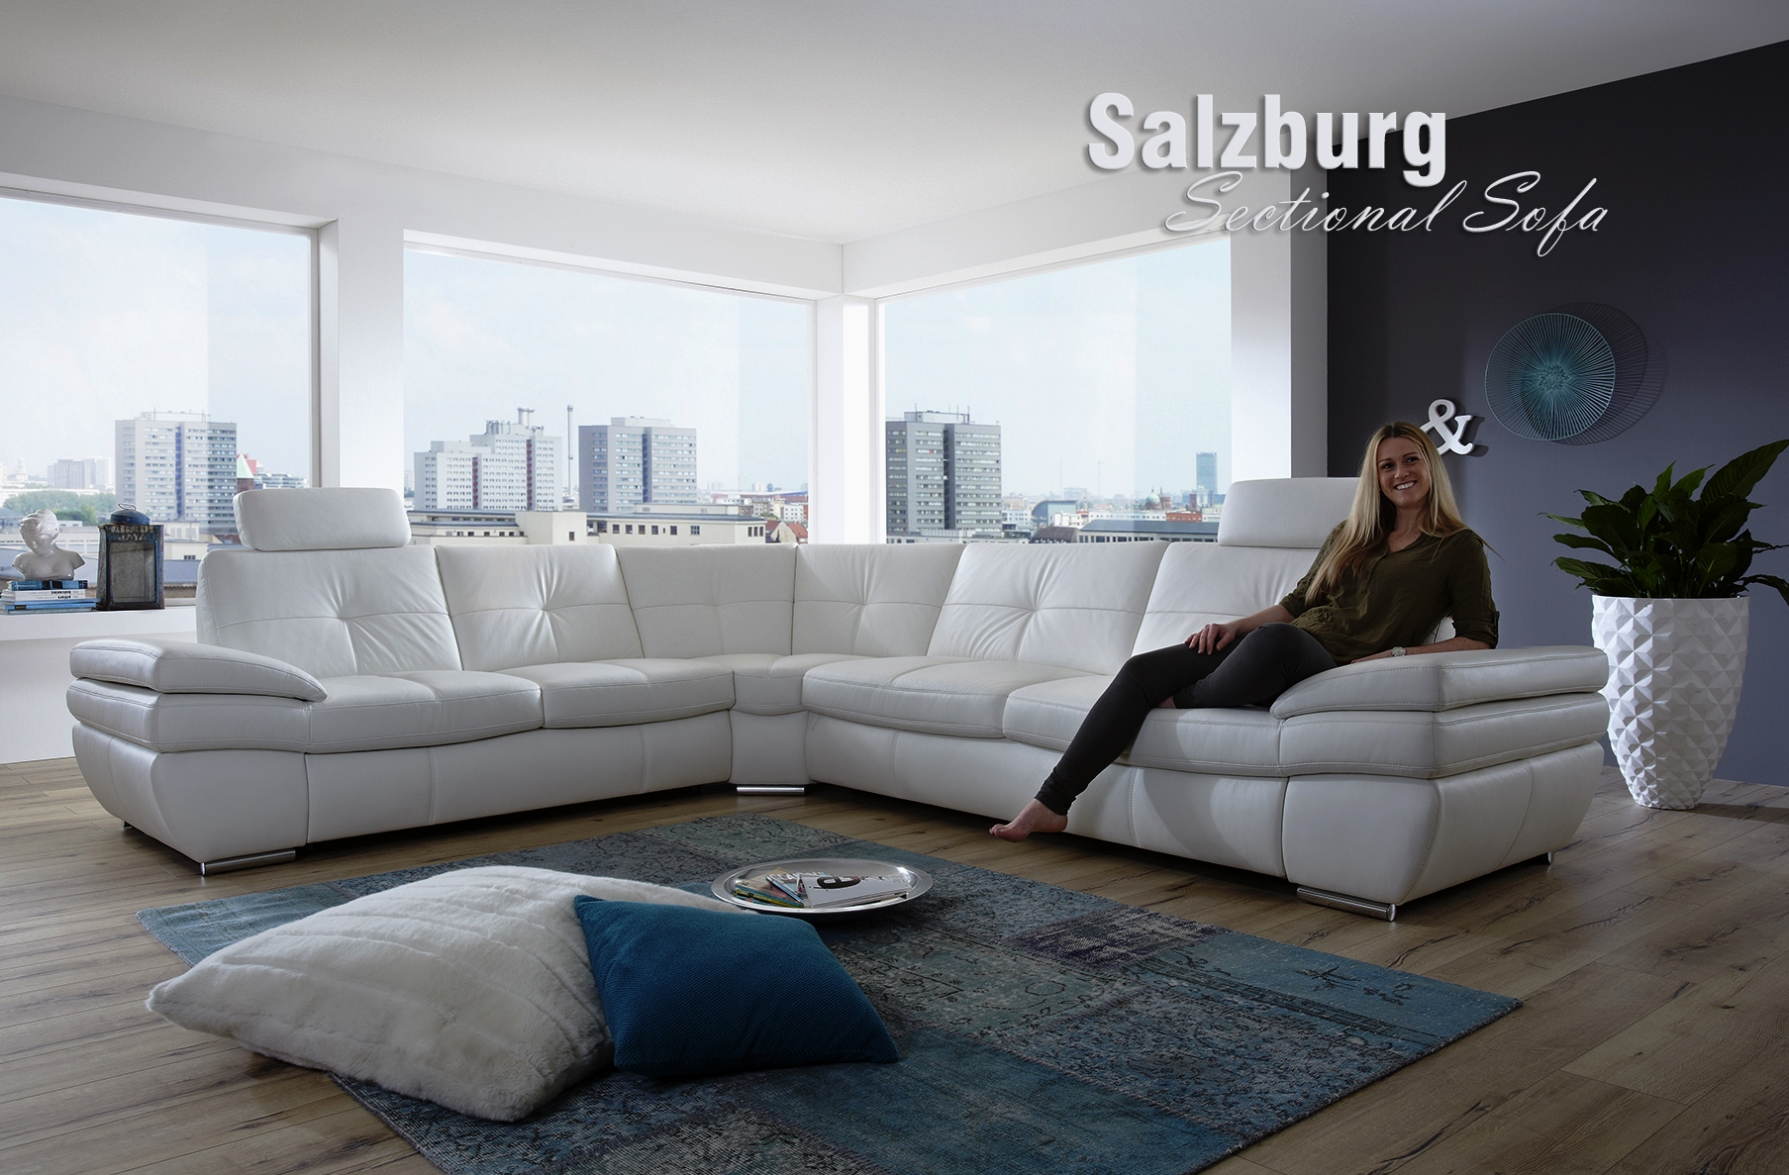 Salzburg Sectional Sofa Design and Functionality